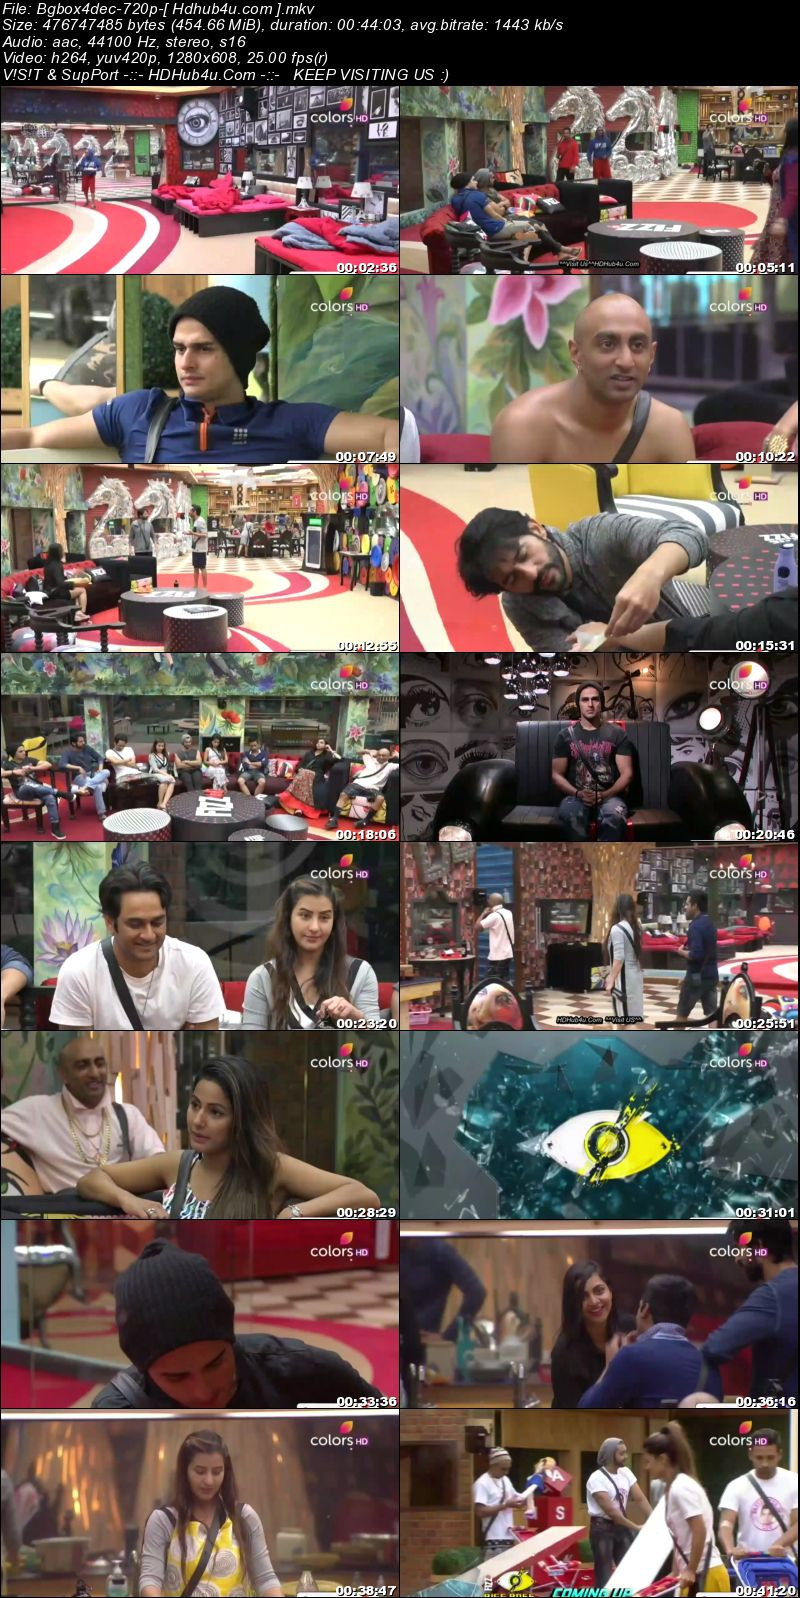 Bigg Boss S11E65 4th December 2017 HDTV 480p 200MB Download